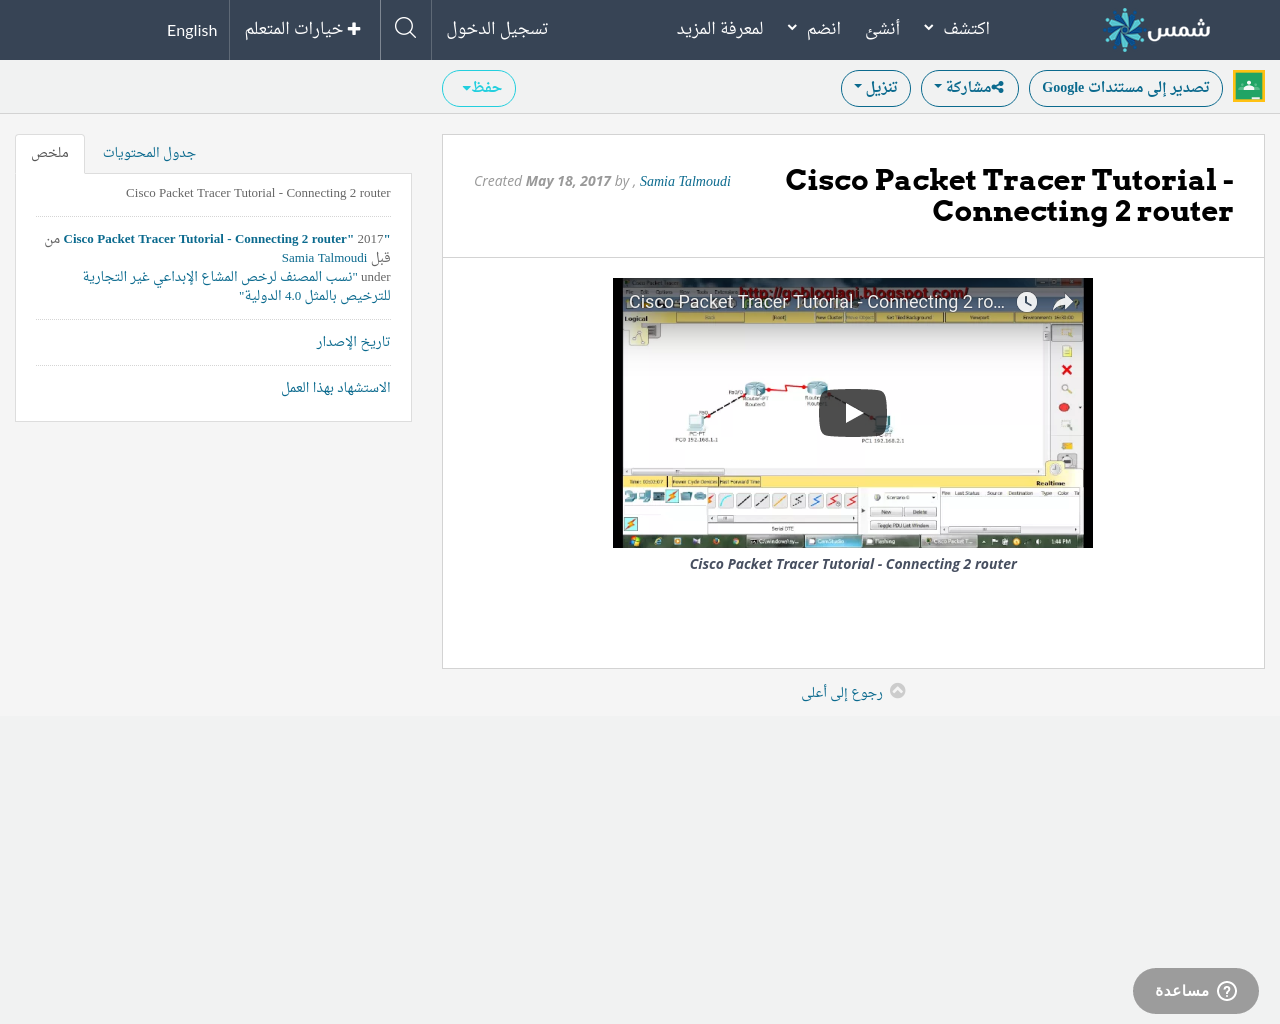 Cisco Packet Tracer Tutorial - Connecting 2 router | SHMS - Saudi